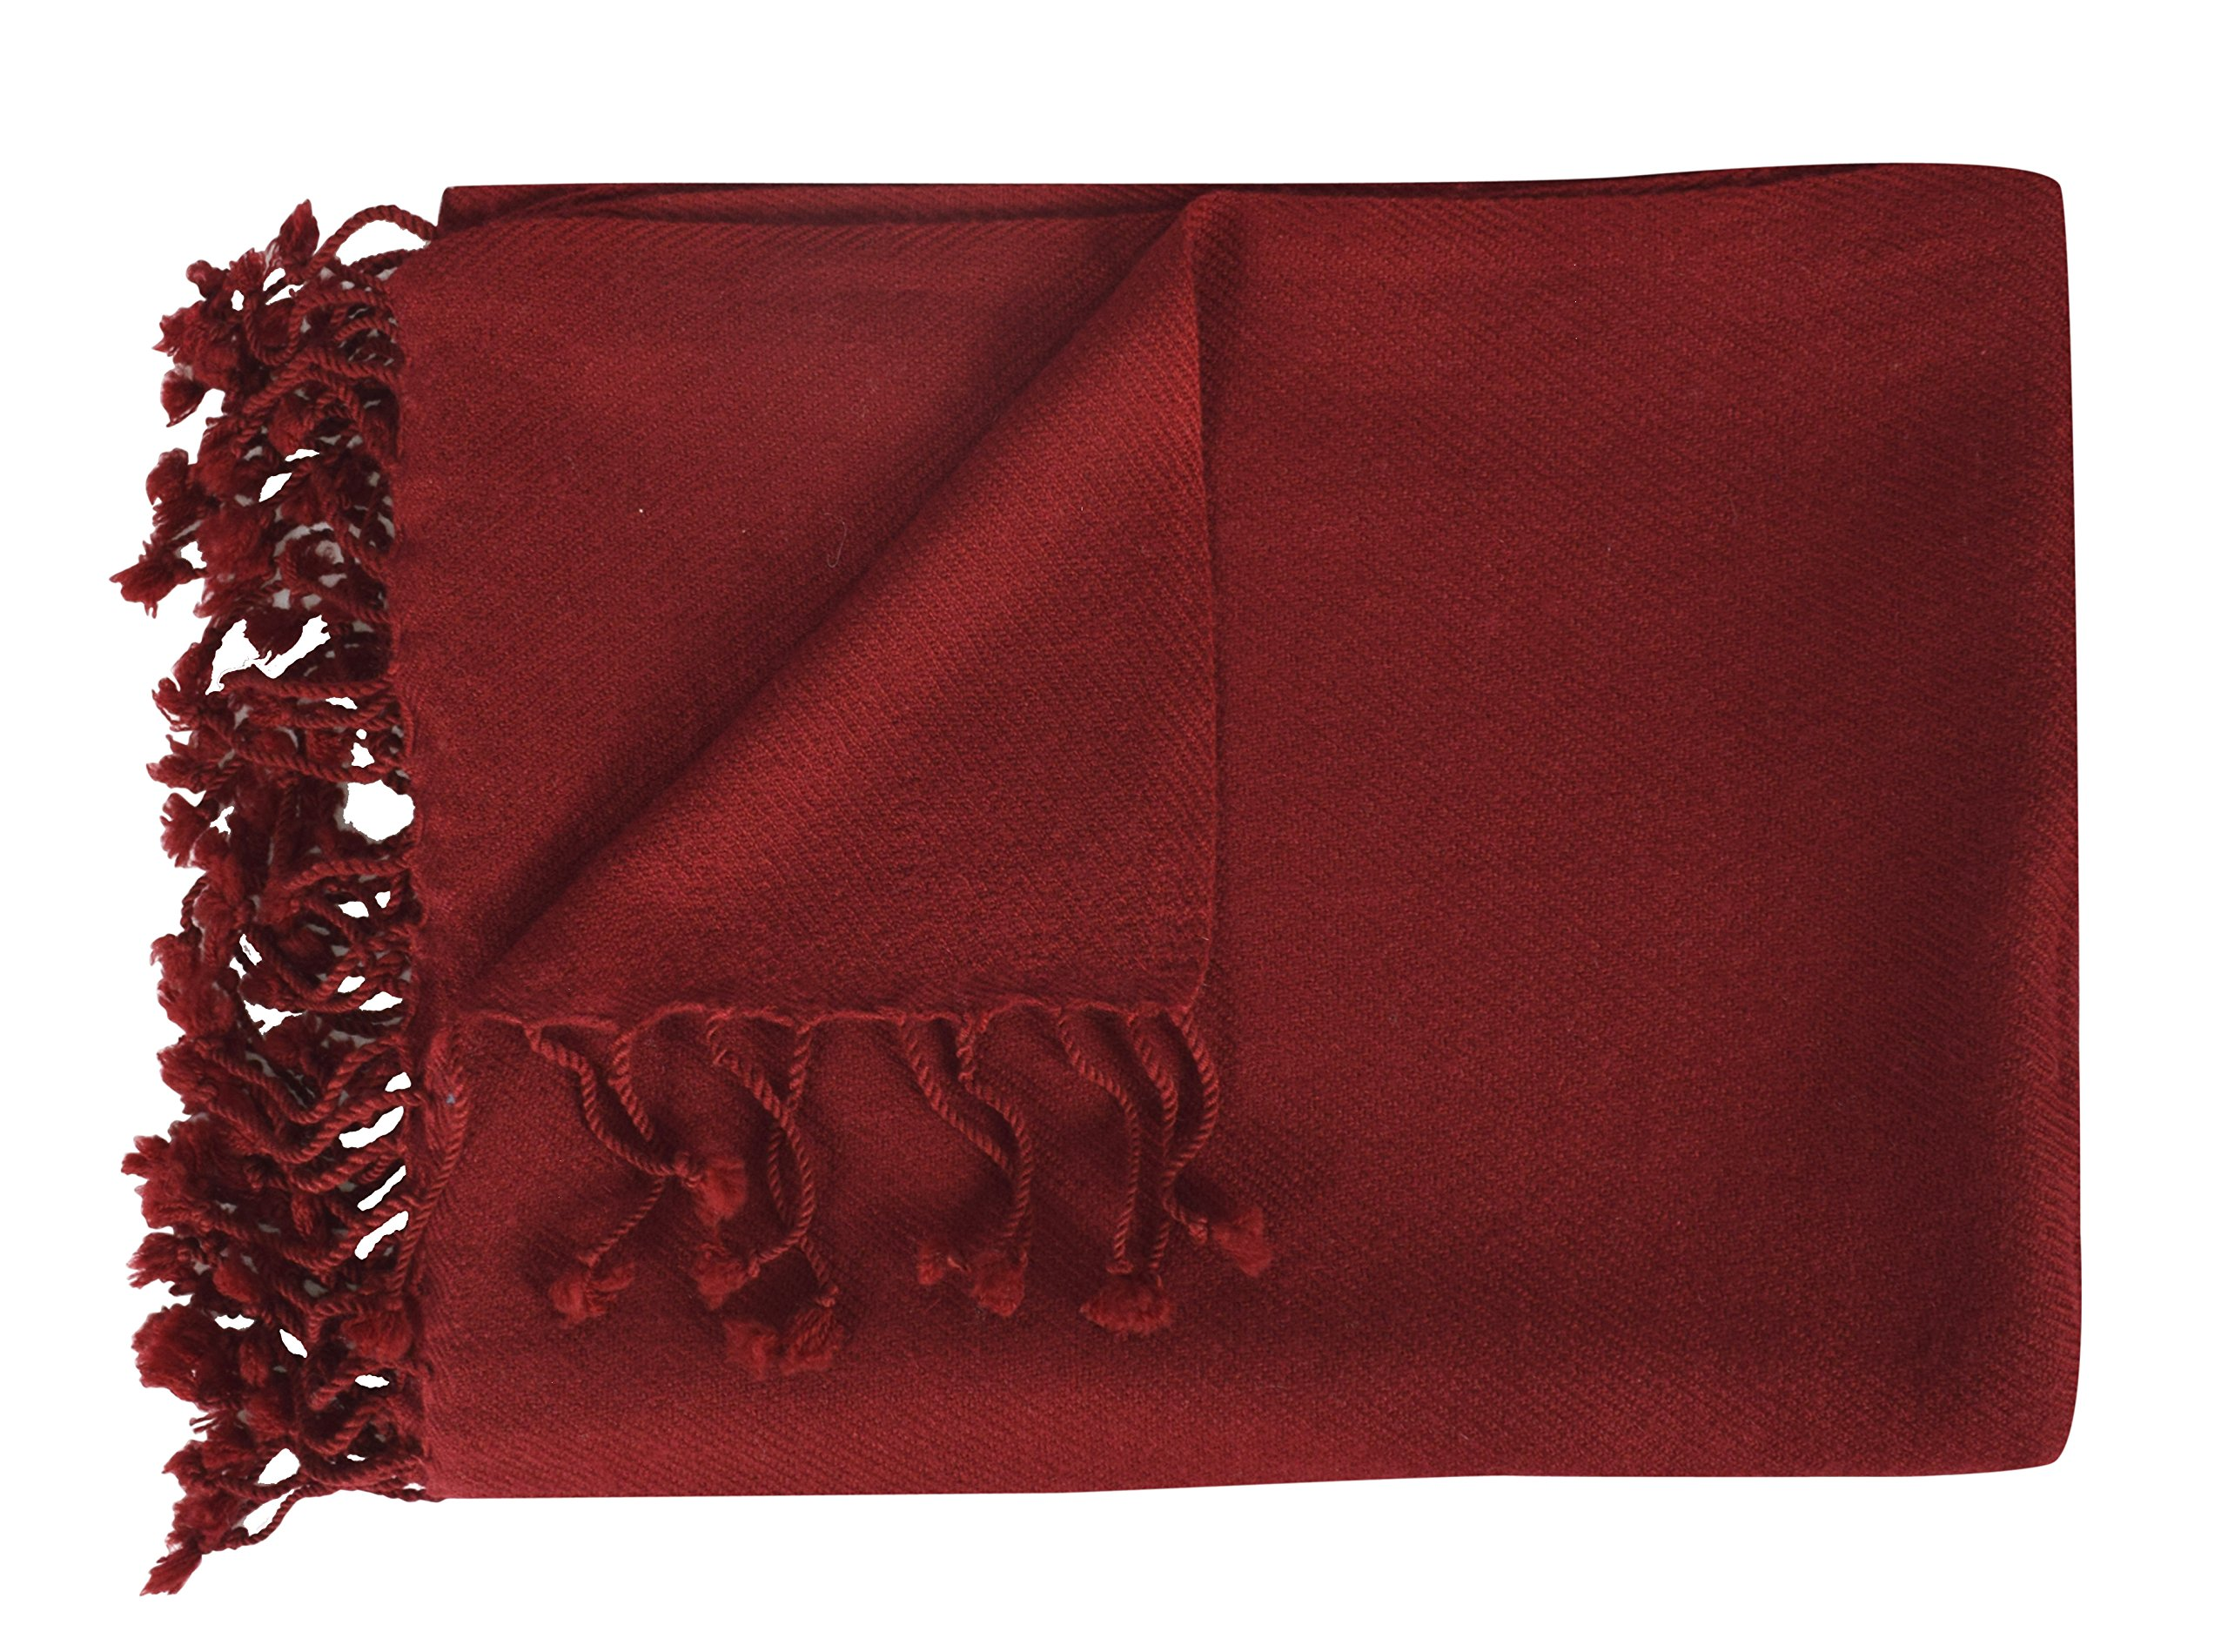 Peach Couture Home Collection Luxuriously Warm and Soft Cashmere Throw Blanket 50 x 60 in (Maroon)